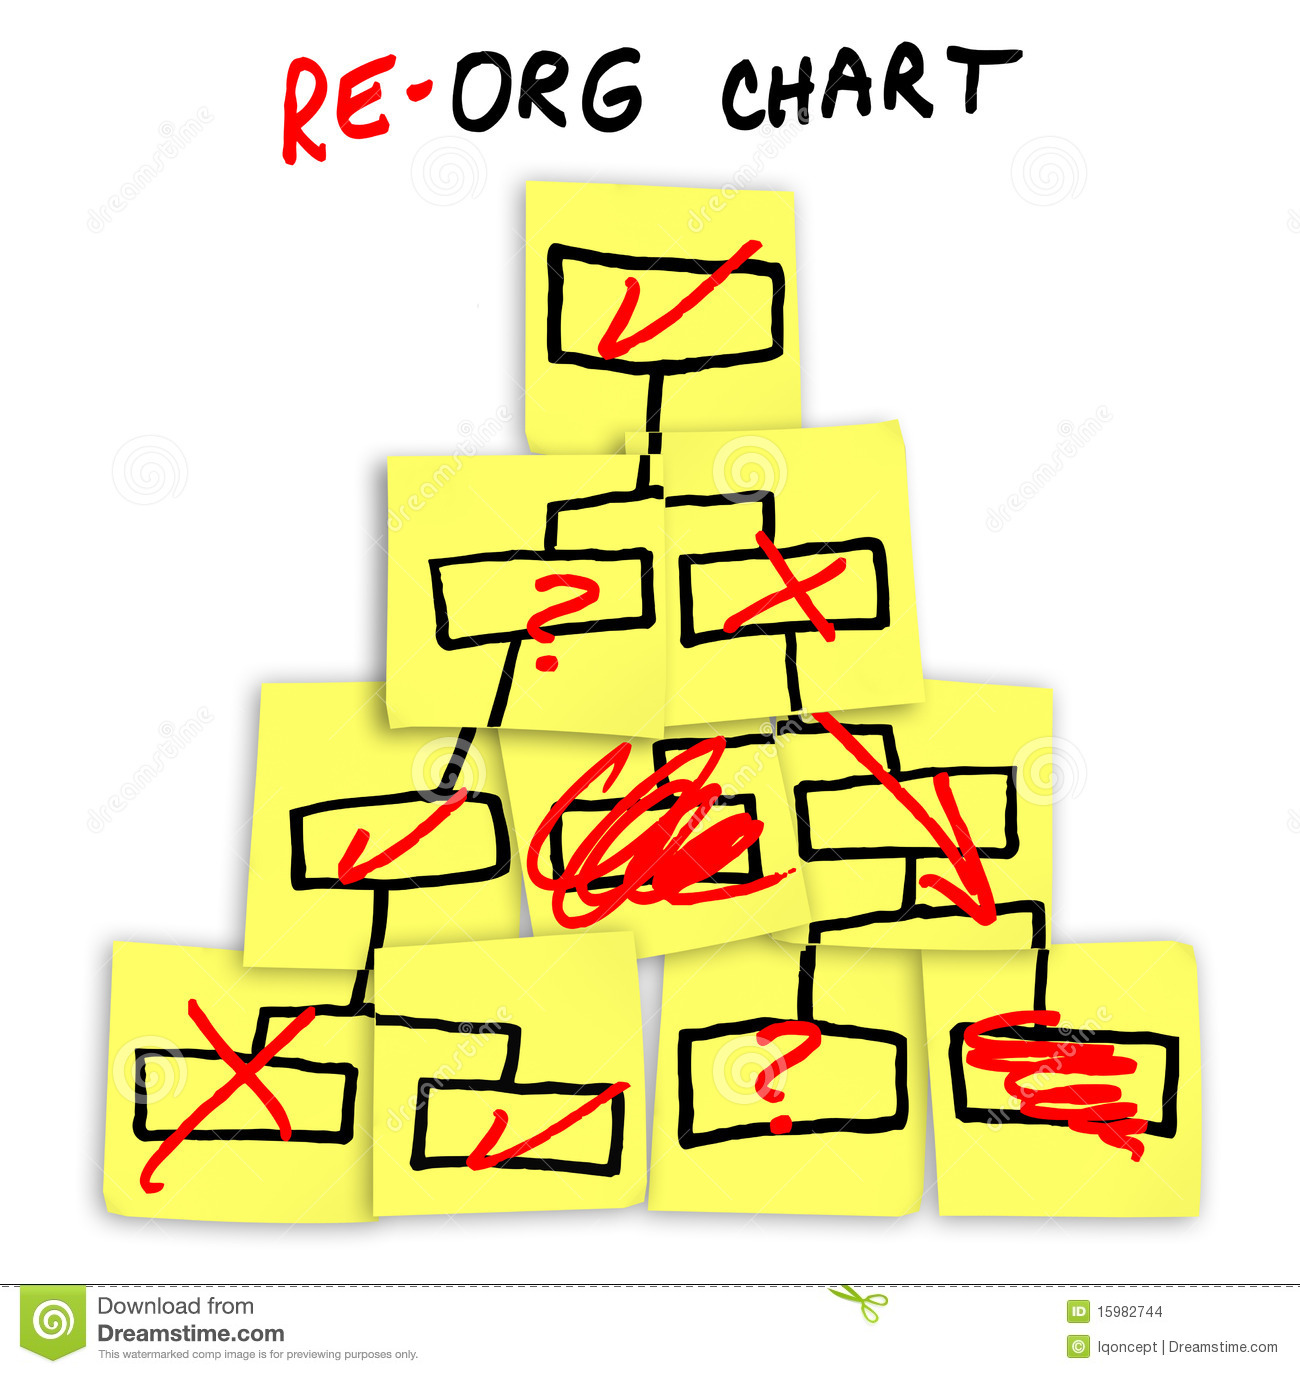 Re-Organization Chart Drawn on Sticky Notes